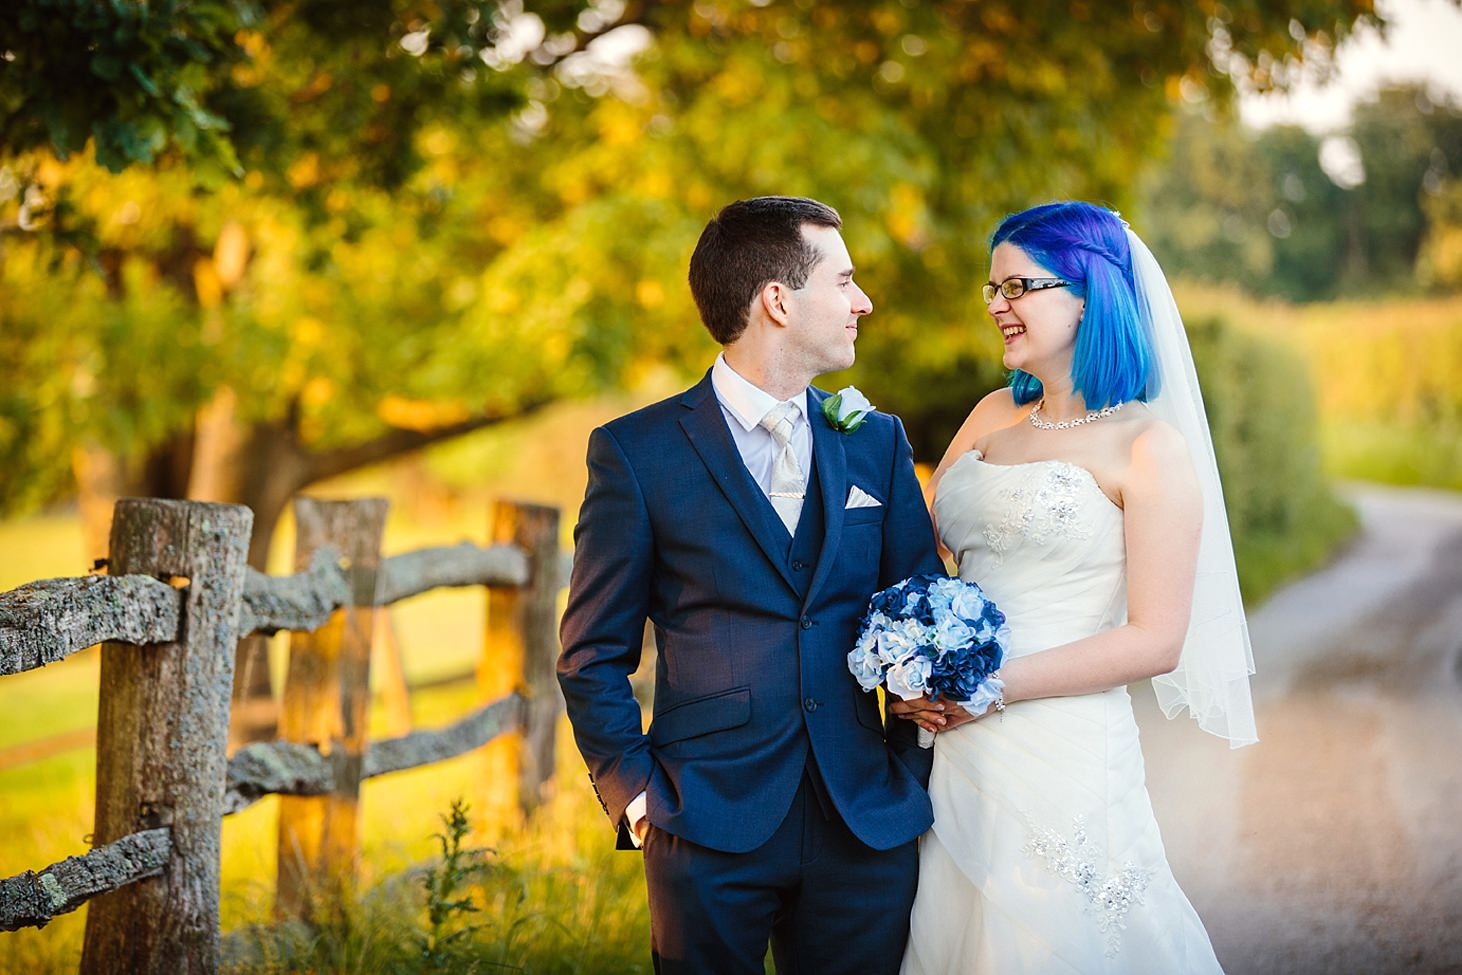 gate street barn wedding photography bride and groom smiling